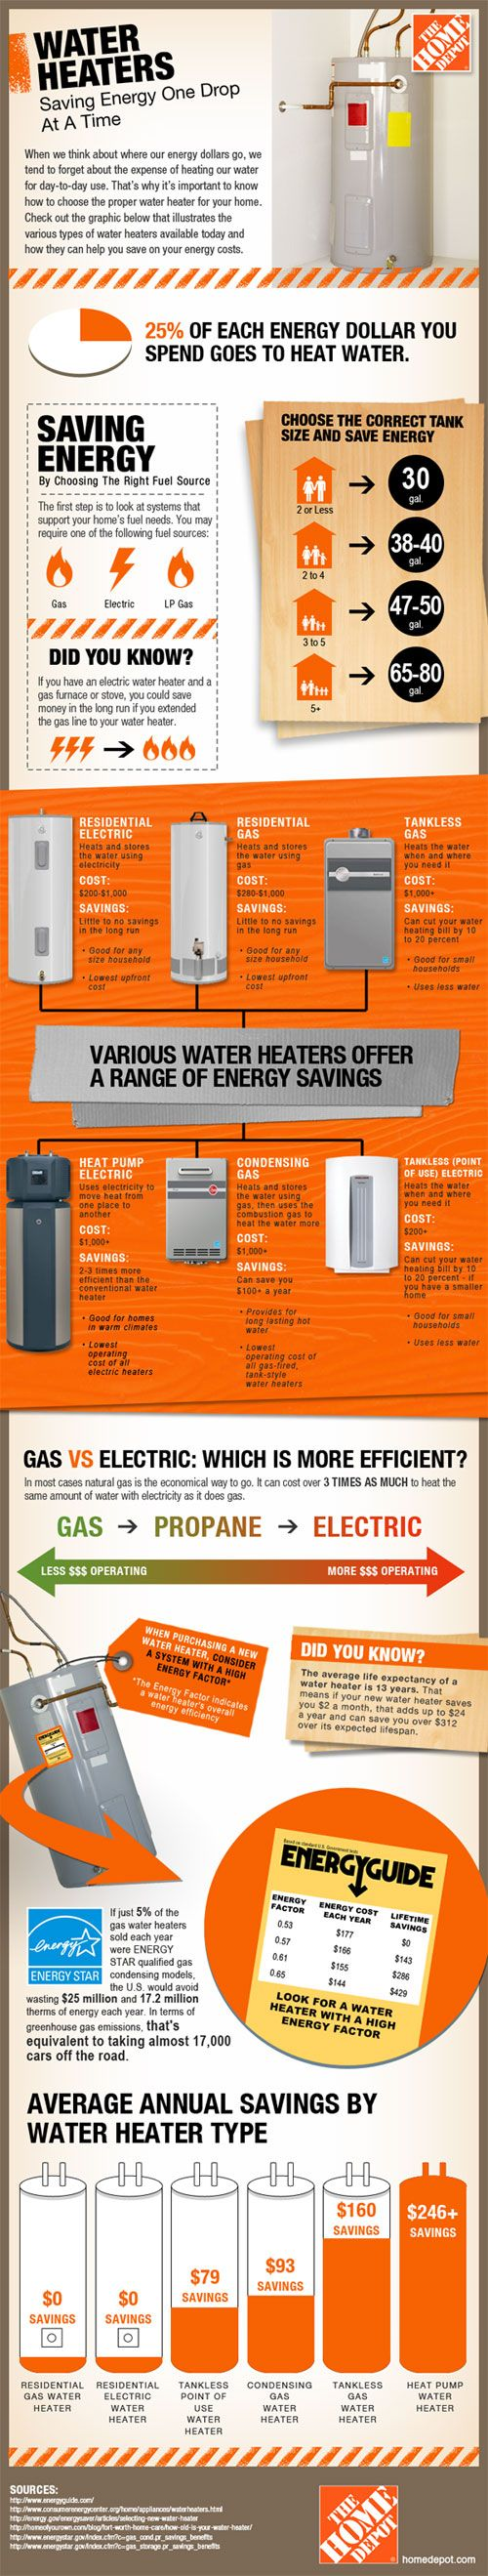 water heaters 101 how to choose the most efficient model infographic